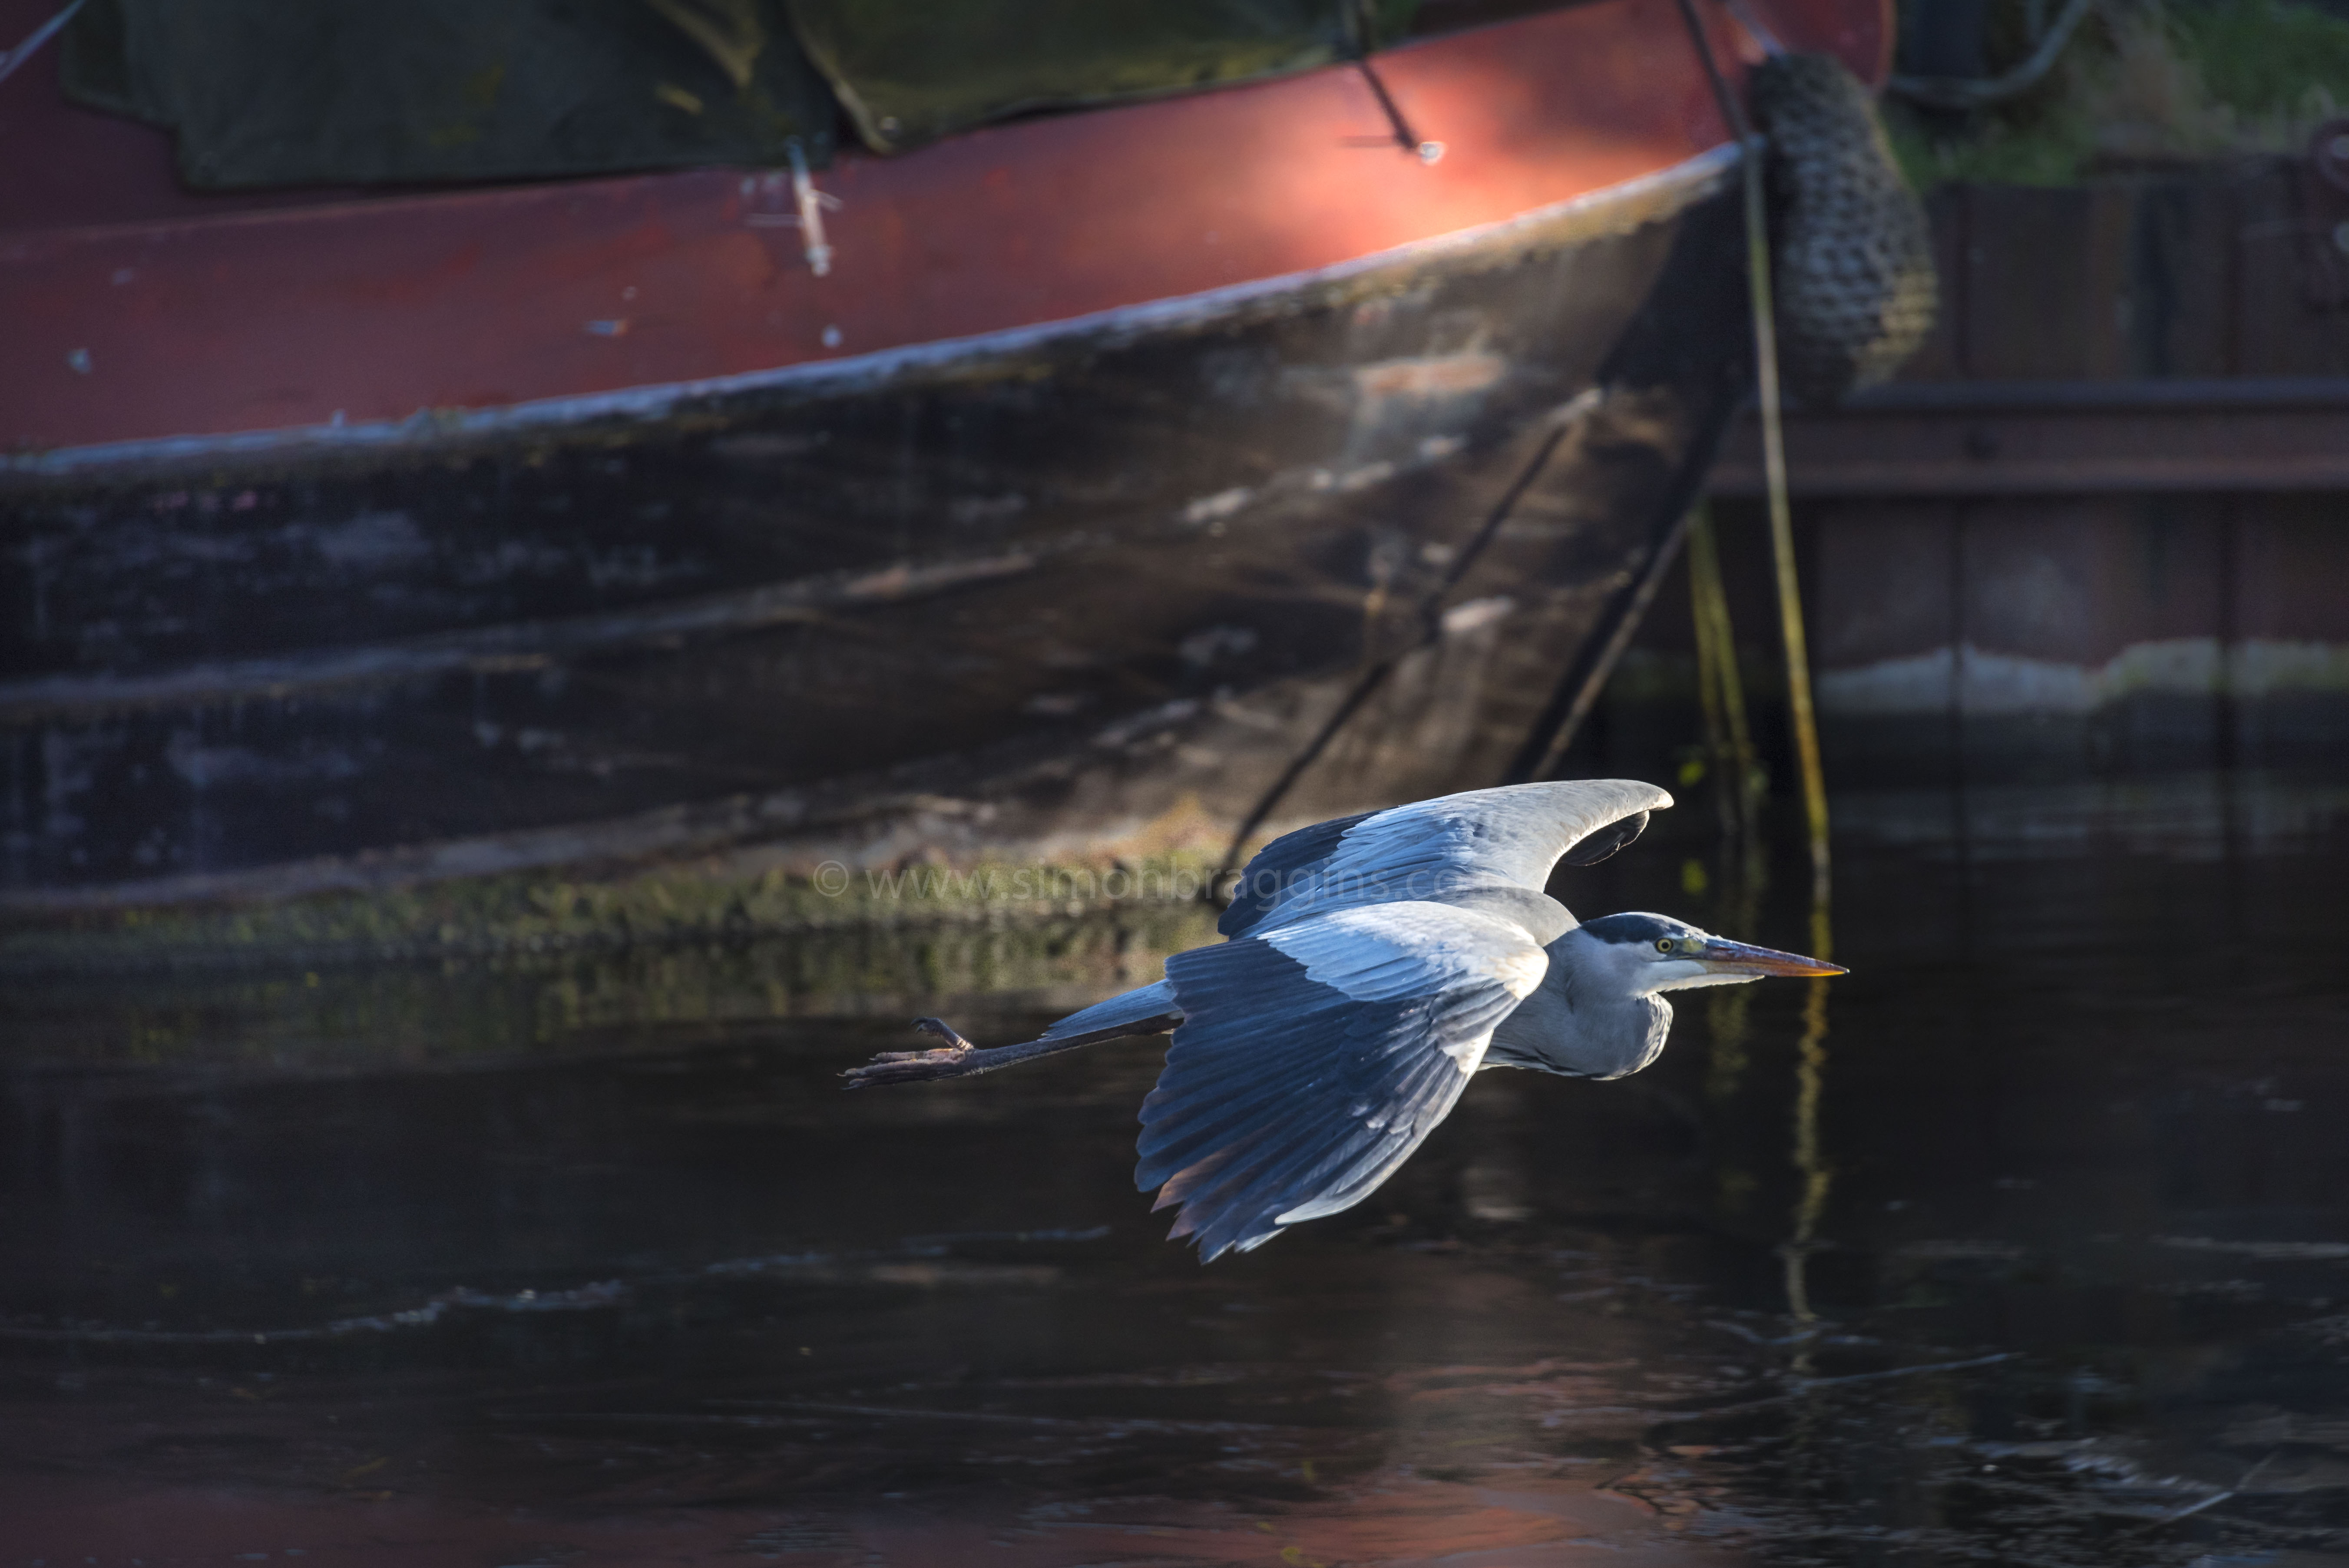 In to the sun: A heron flies out of the dark in to the sun. -Tottenham Hale Lock, December 2017